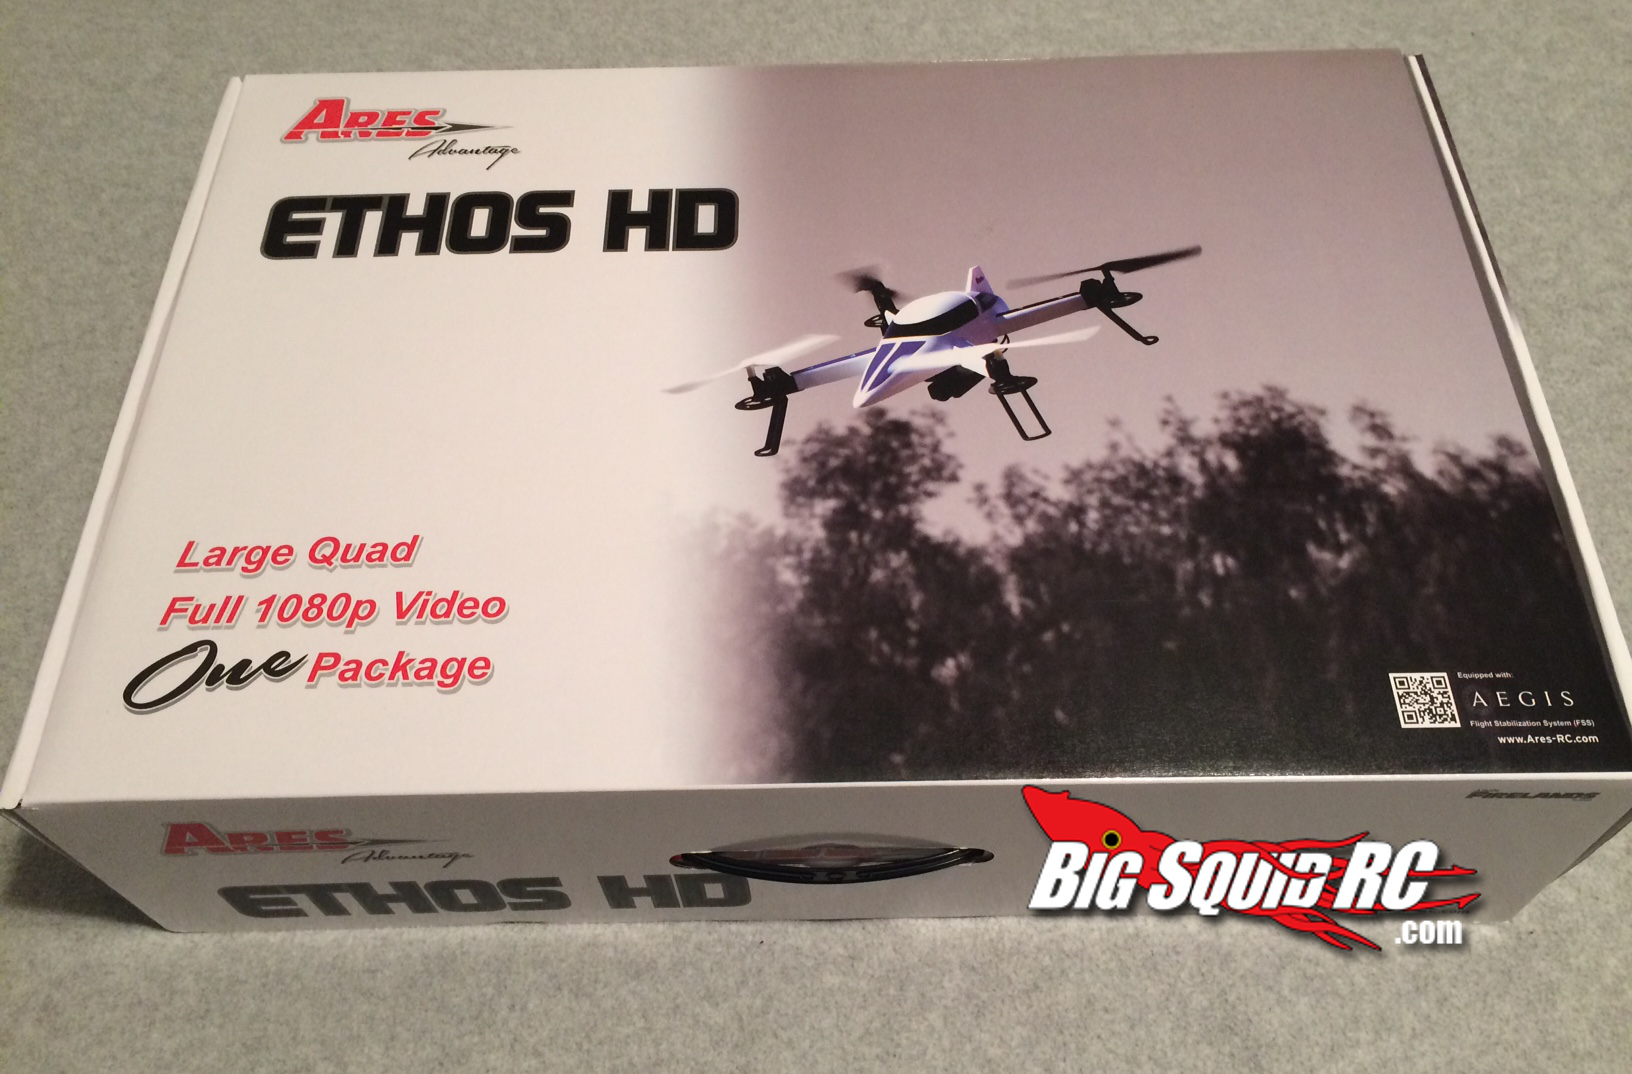 Ares Ethos Hd 171 Big Squid Rc Rc Car And Truck News